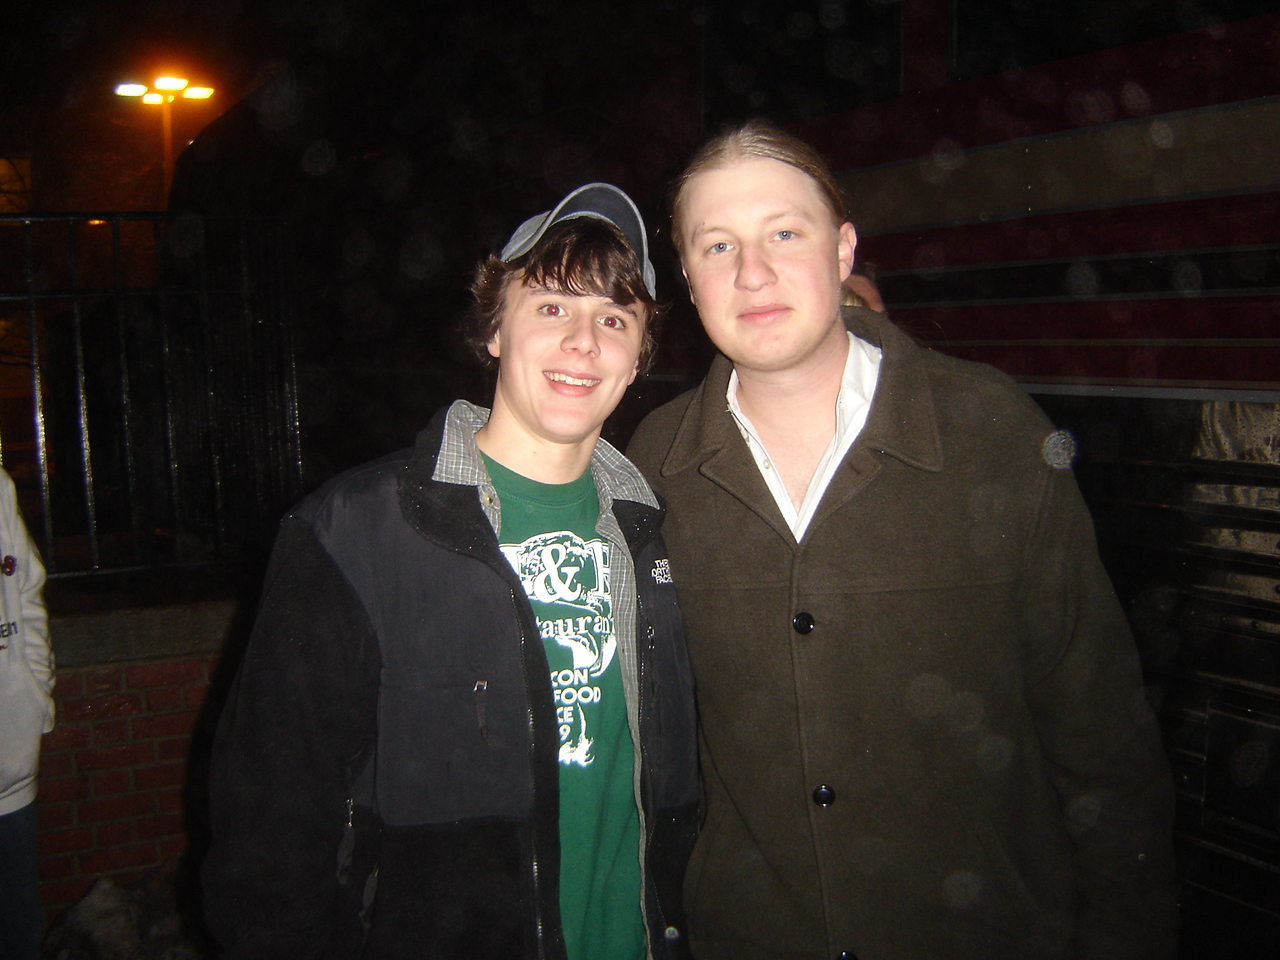 This is me and Derek after Ridgefield Playhouse show on 1/13/06 :)